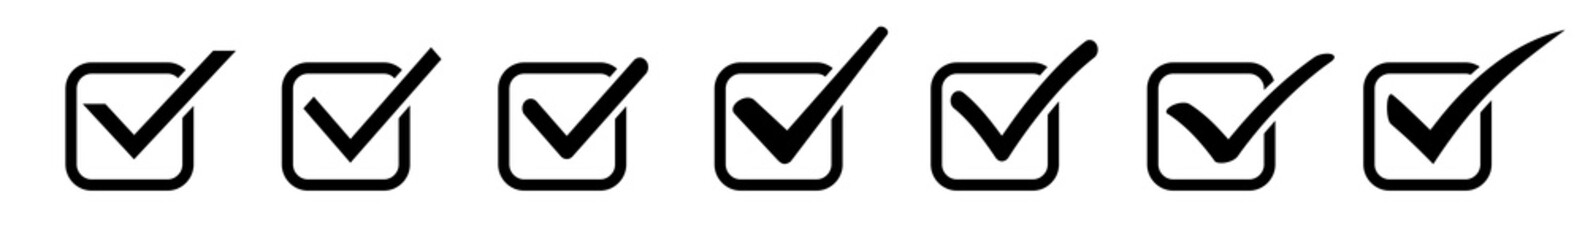 Check Mark Checkbox Square Icon Black | Checkmark Illustration | Tick Symbol | Voting Logo | Approved Sign | Isolated | Variations